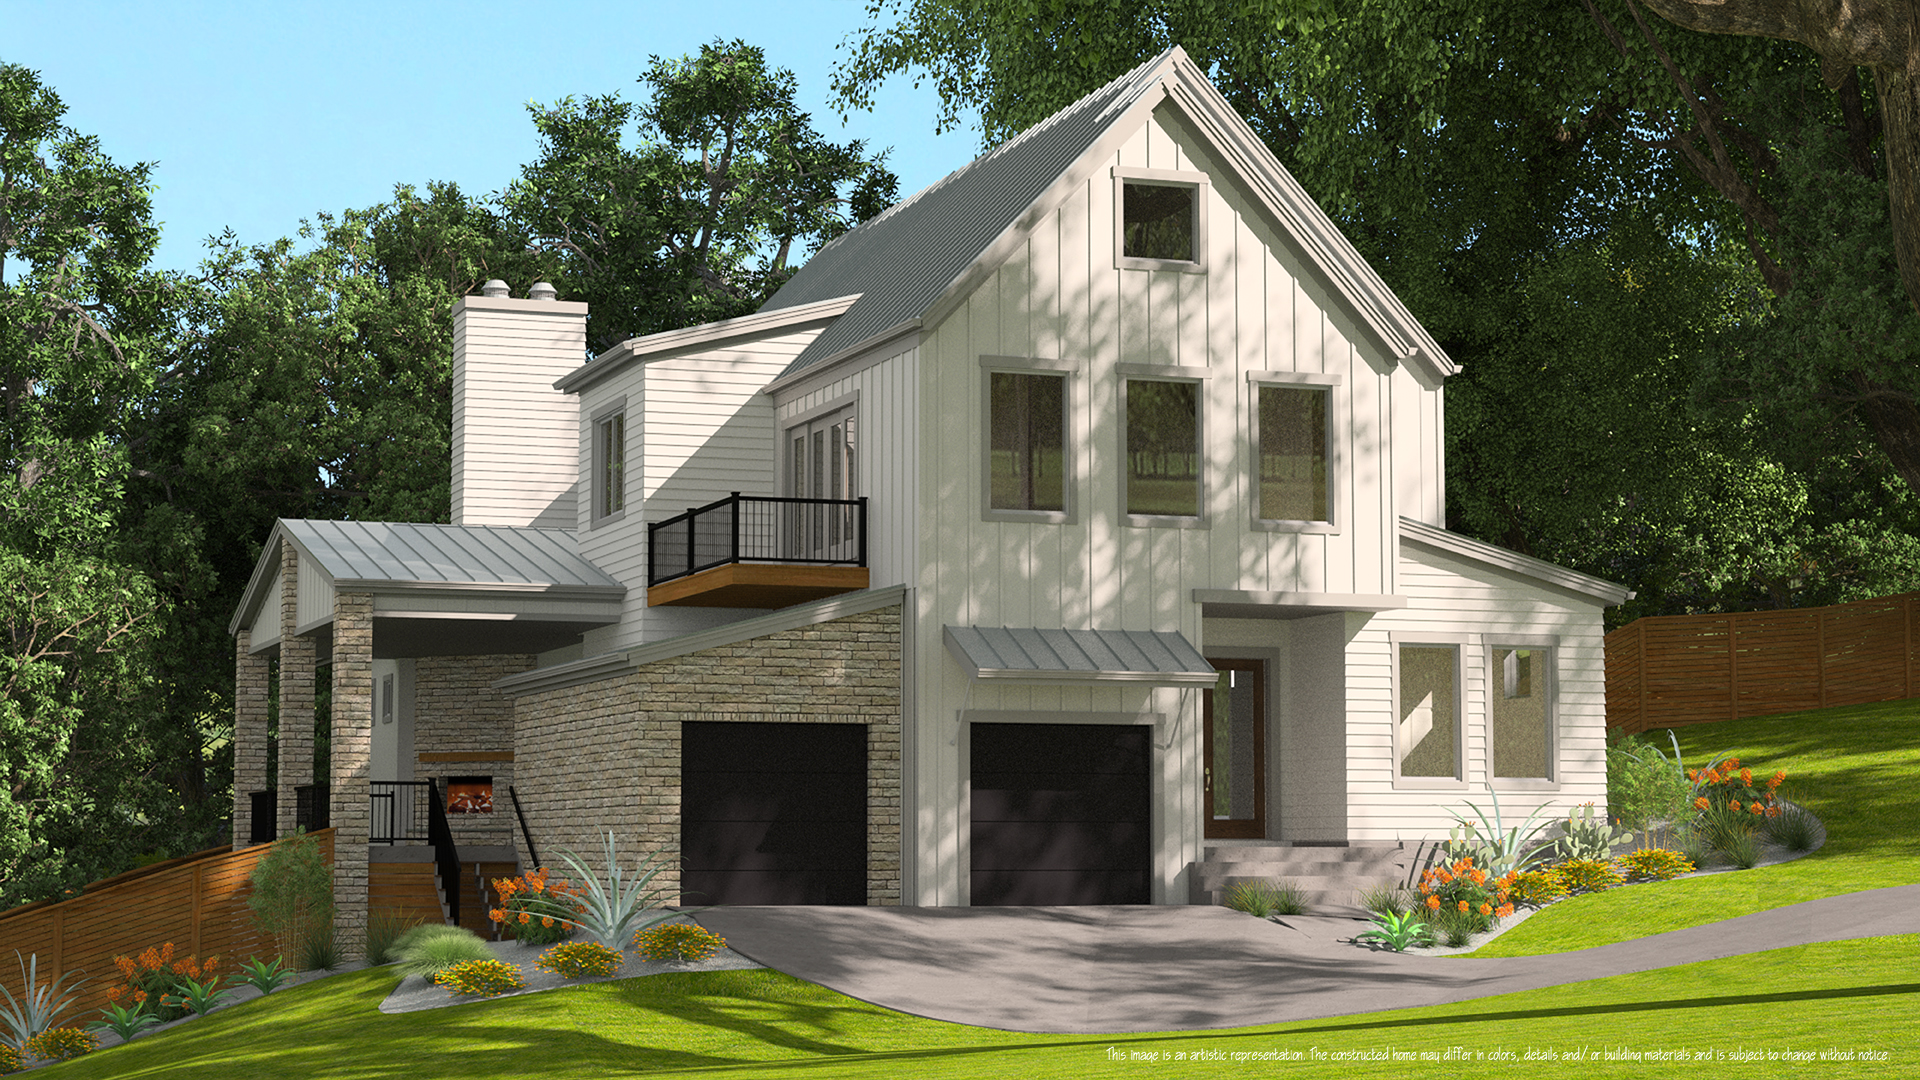 3D Exterior Production Renderings - Various builders commissioned production 3D renderings to use as marketing media.